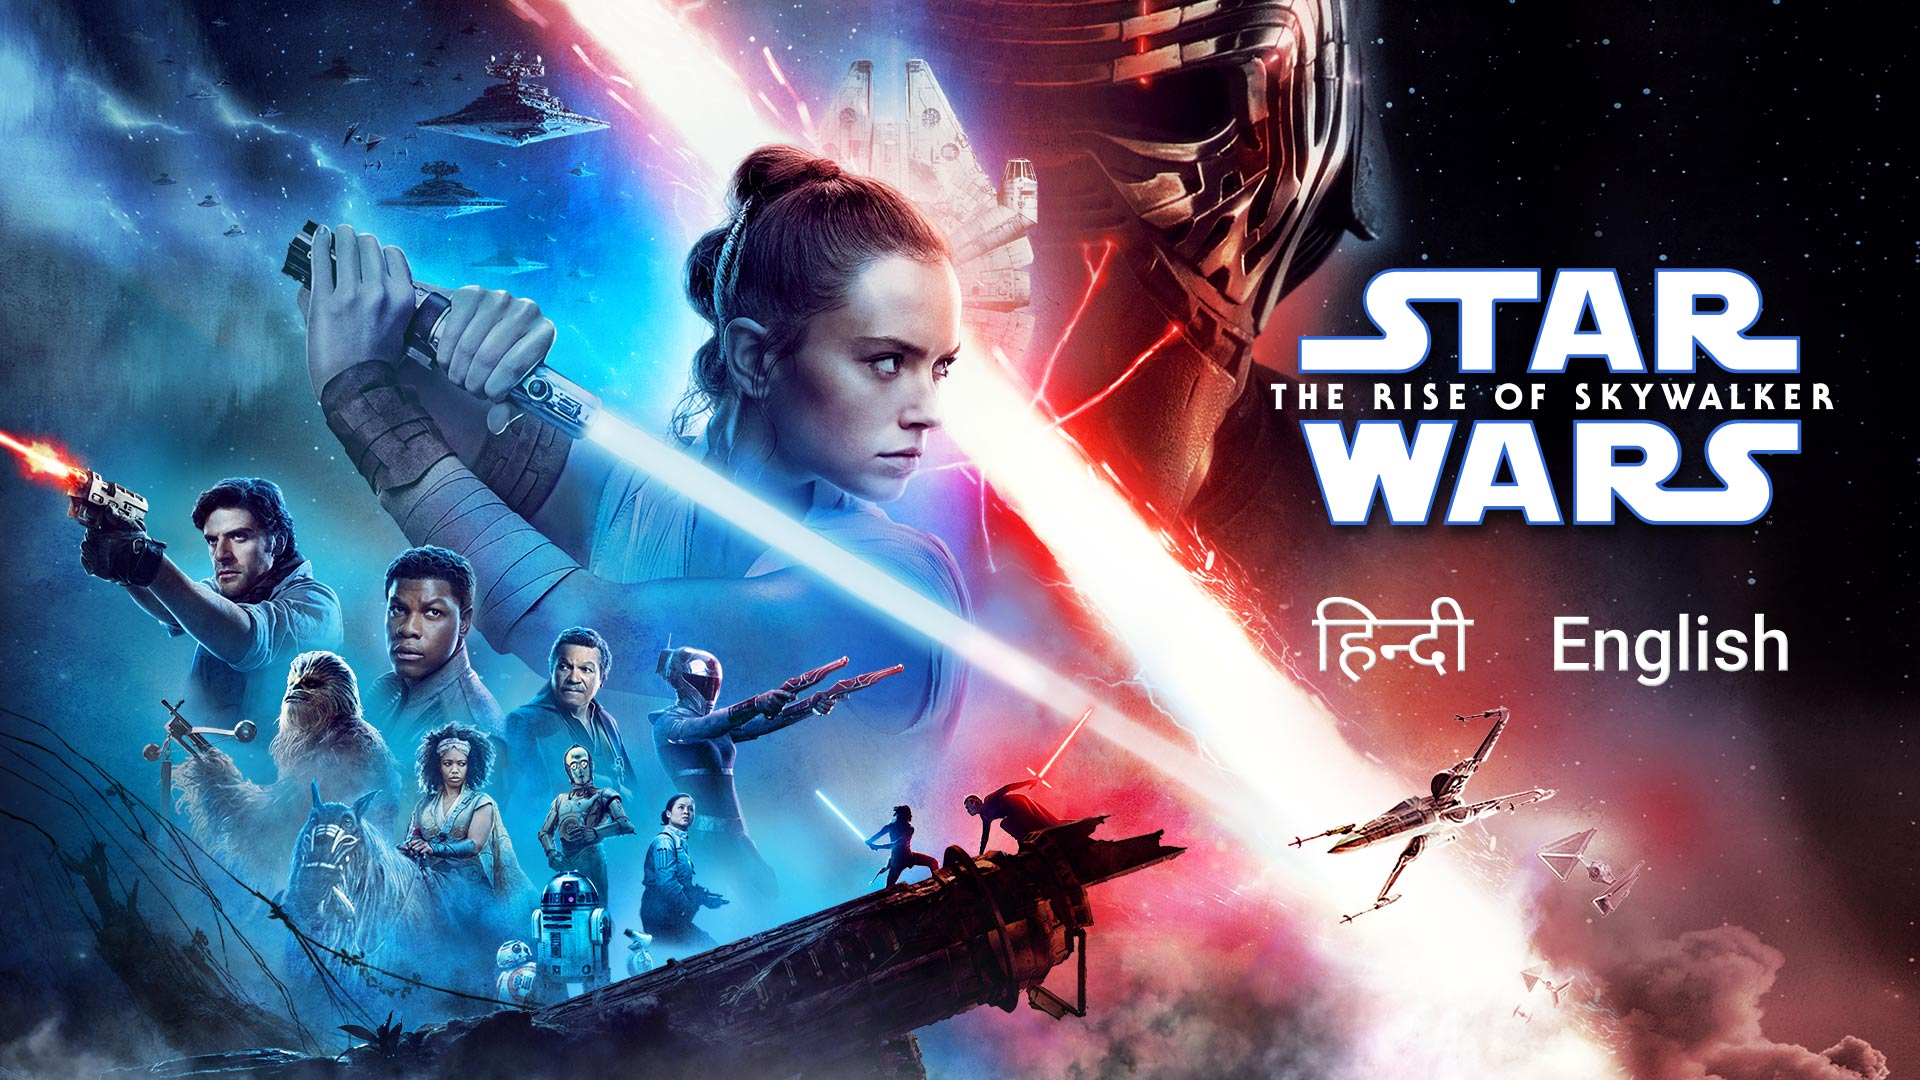 star wars the rise of skywalker (2019) hotstar